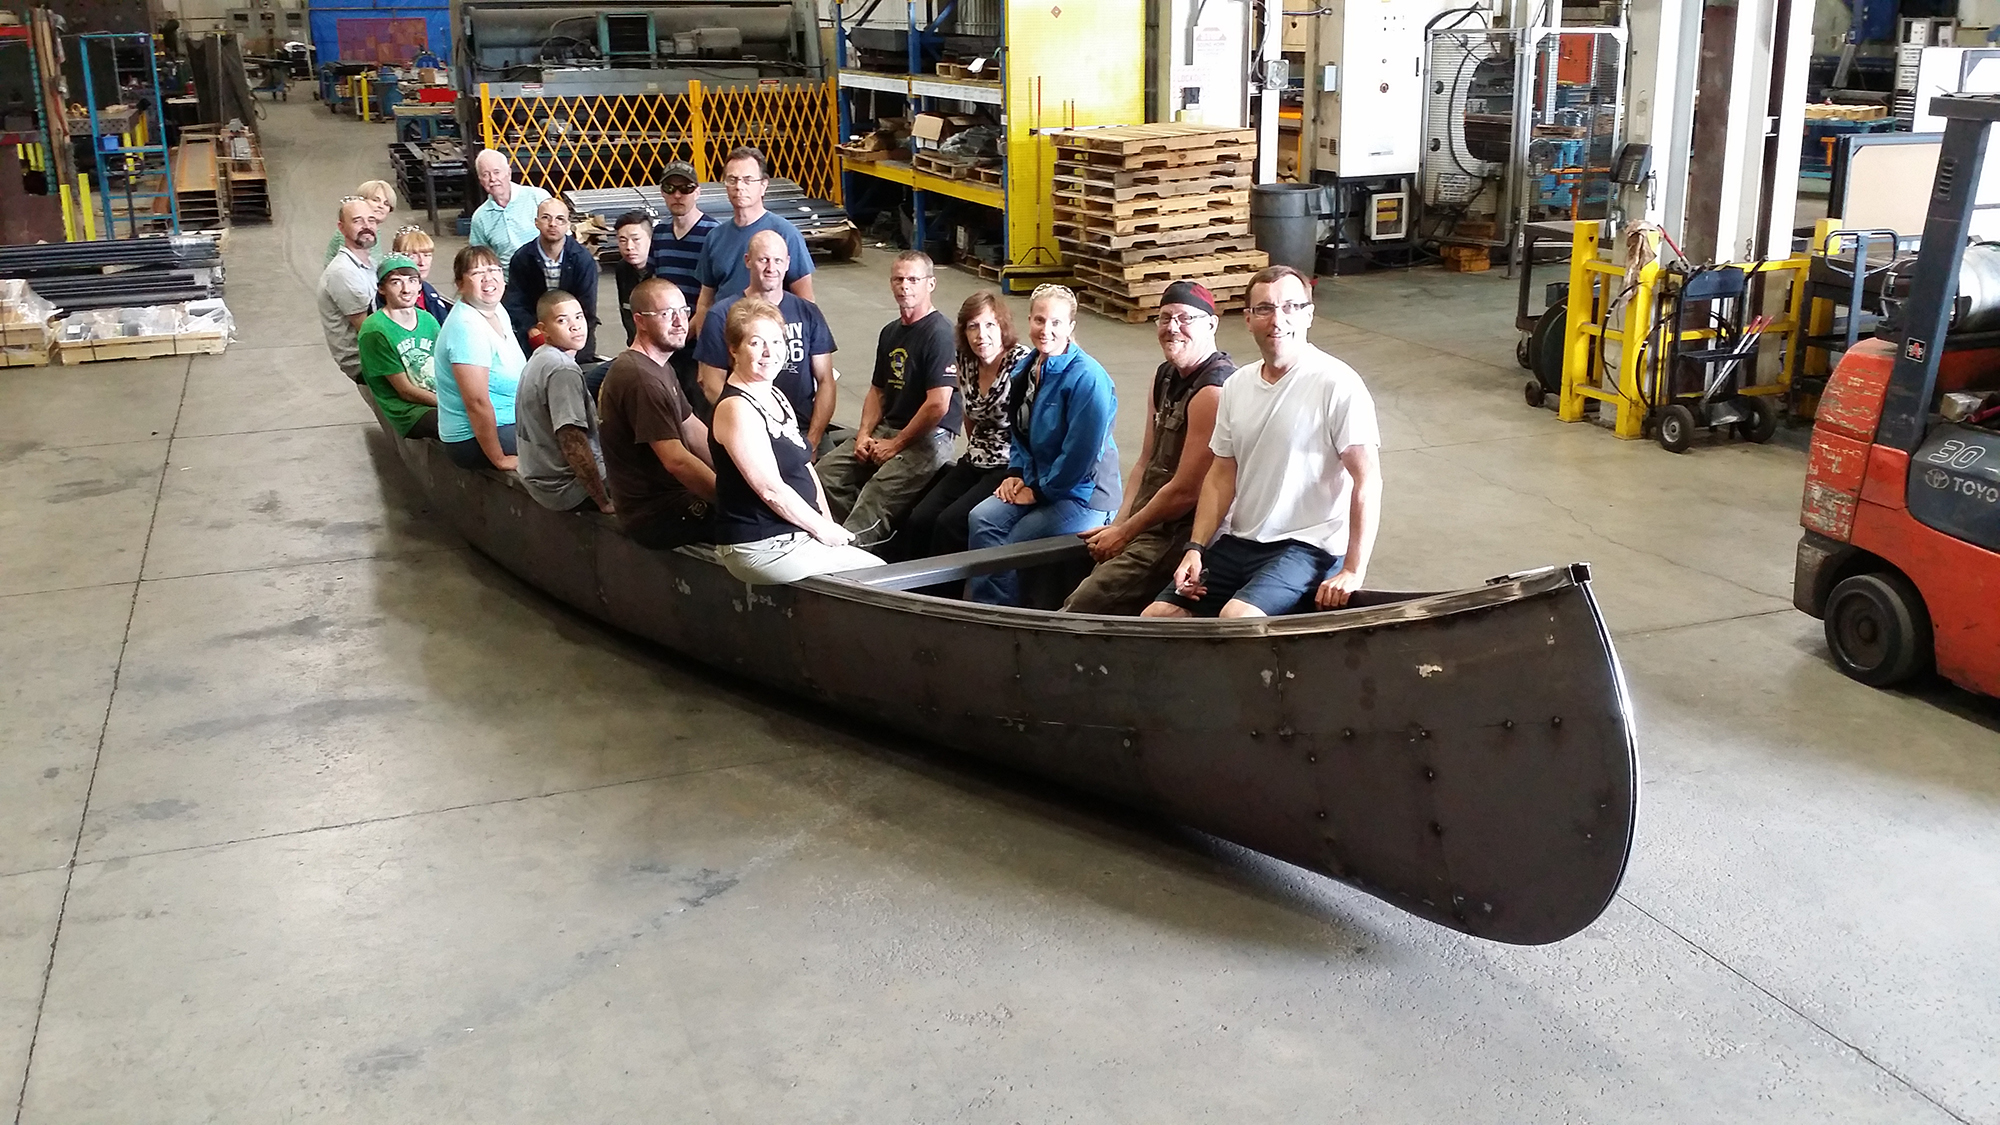 Canoe made to celebrate Champlain's landing in Ontario with the body made from Corten steel to prevent long term rusting. Canoe was designed and welded on-site by Lafontaine Ironwerks.